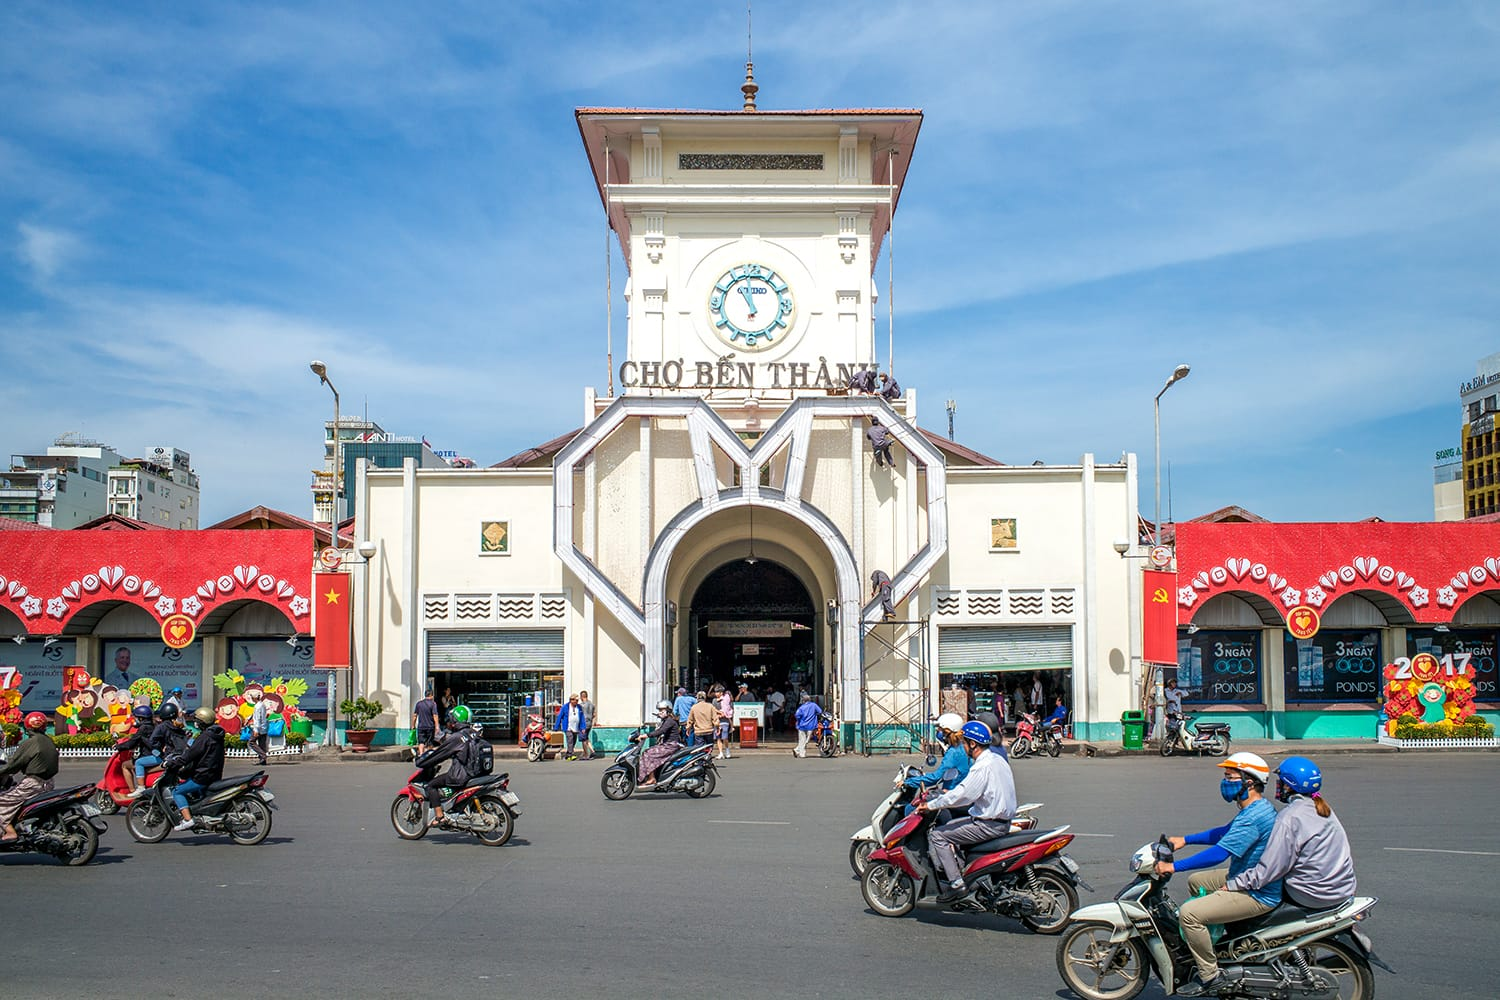 The entrance of Saigon Central Market, also known as Ben Thanh market, one of the earliest surviving structures in Ho Chi Minh City, Vietnam